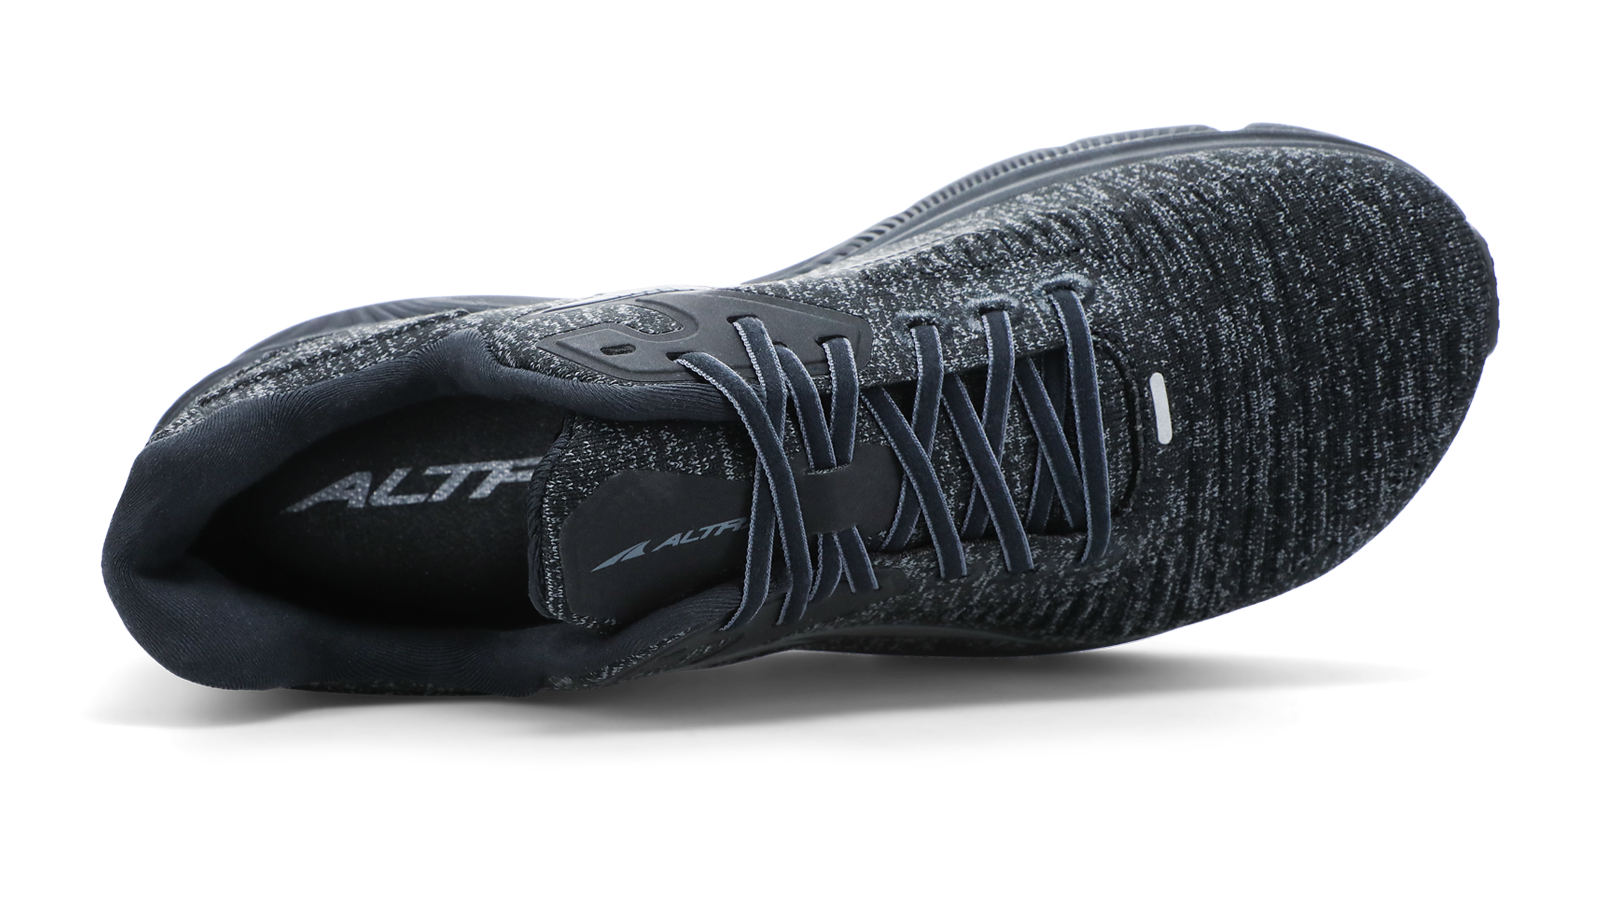 Altra Running Torin Luxes - Performance store - ΑΘΛΗΤΙΚΆ ΠΑΠΟΥΤΣΙΑ - RUNNING SHOES THEESALONIKI - RUNNING CLOTHS - SHOES HOKA